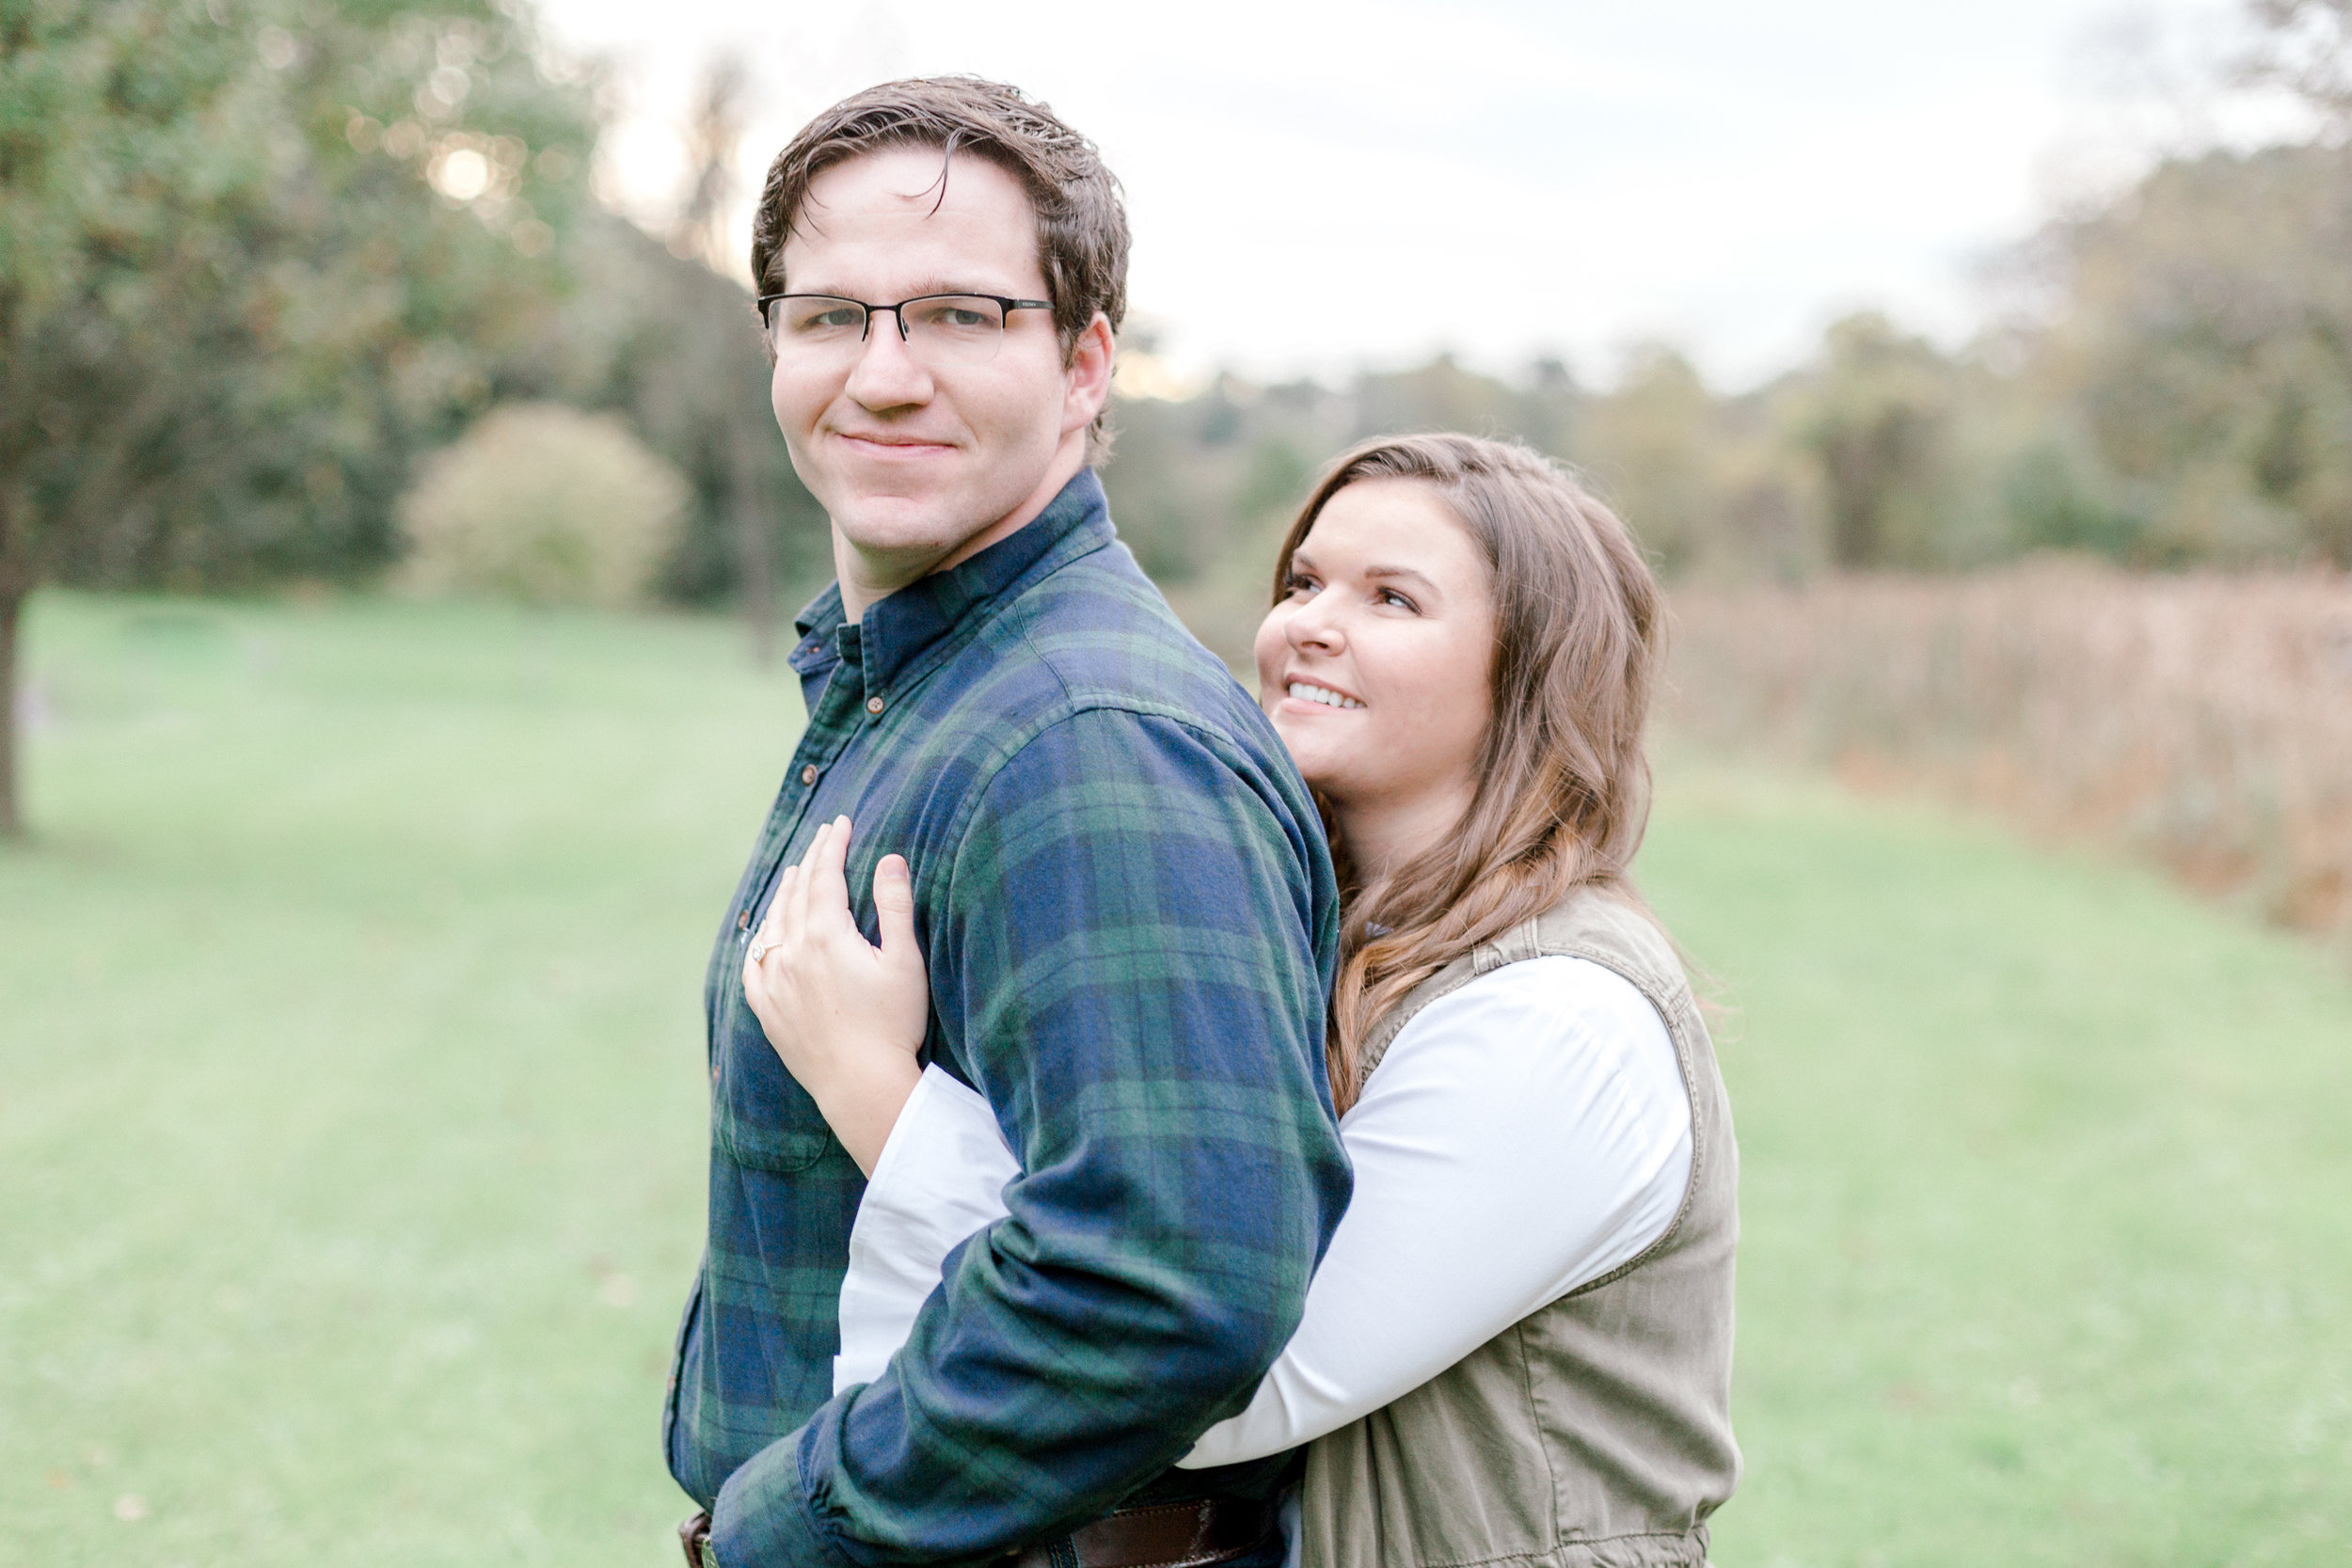 Lehigh valley Fish hatchery fall Engagement Session wedding and lifestyle photographer Lytle Photo Co (56 of 66).jpg